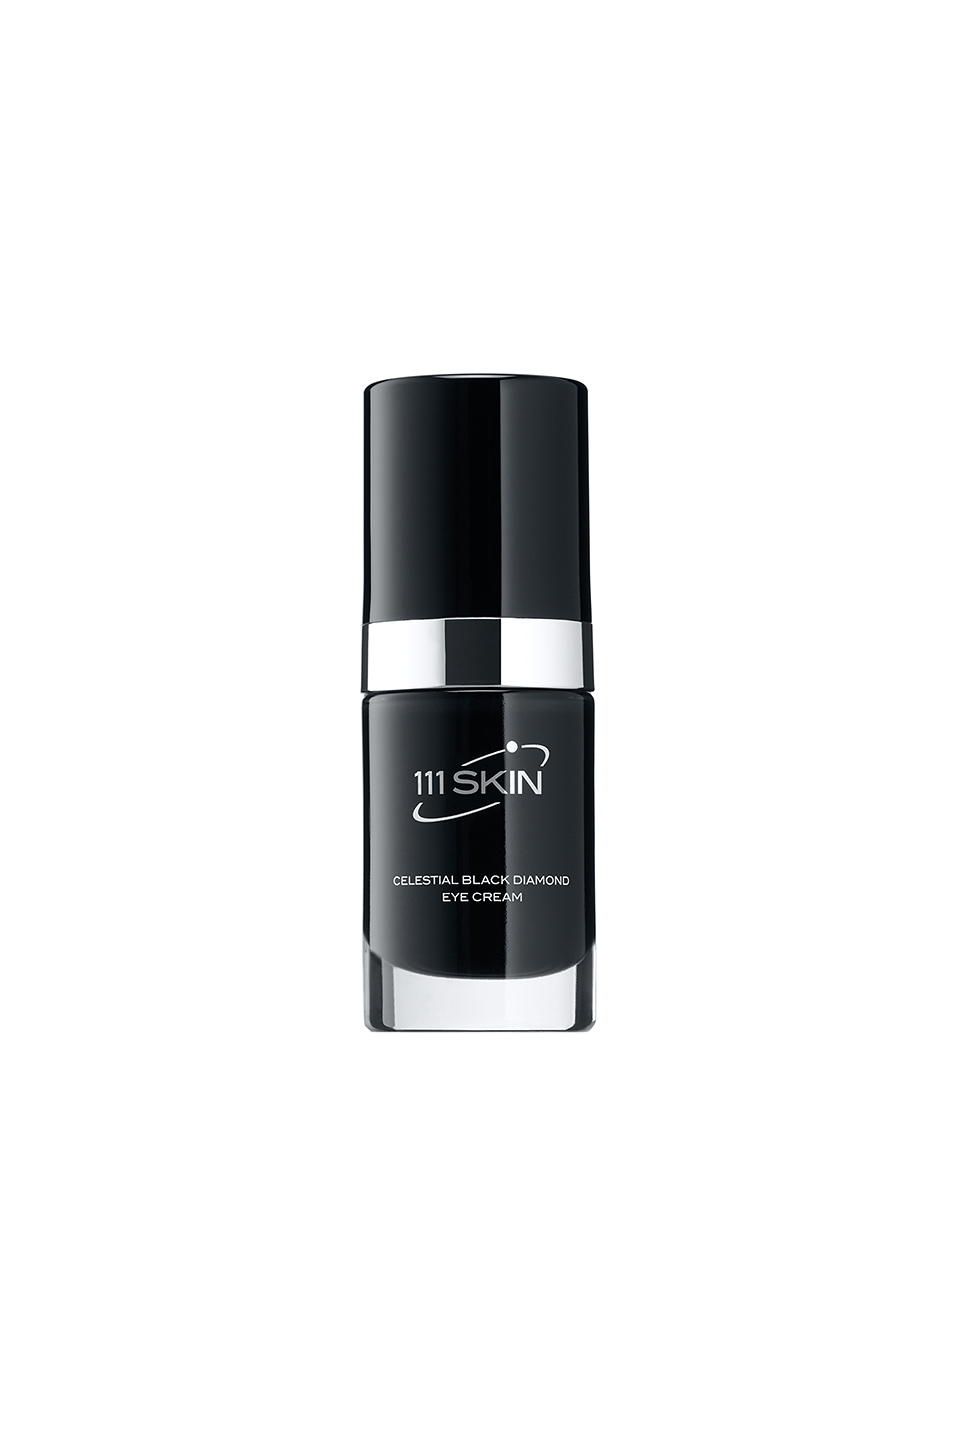 111Skin Celestial Black Diamond Eye Cream in